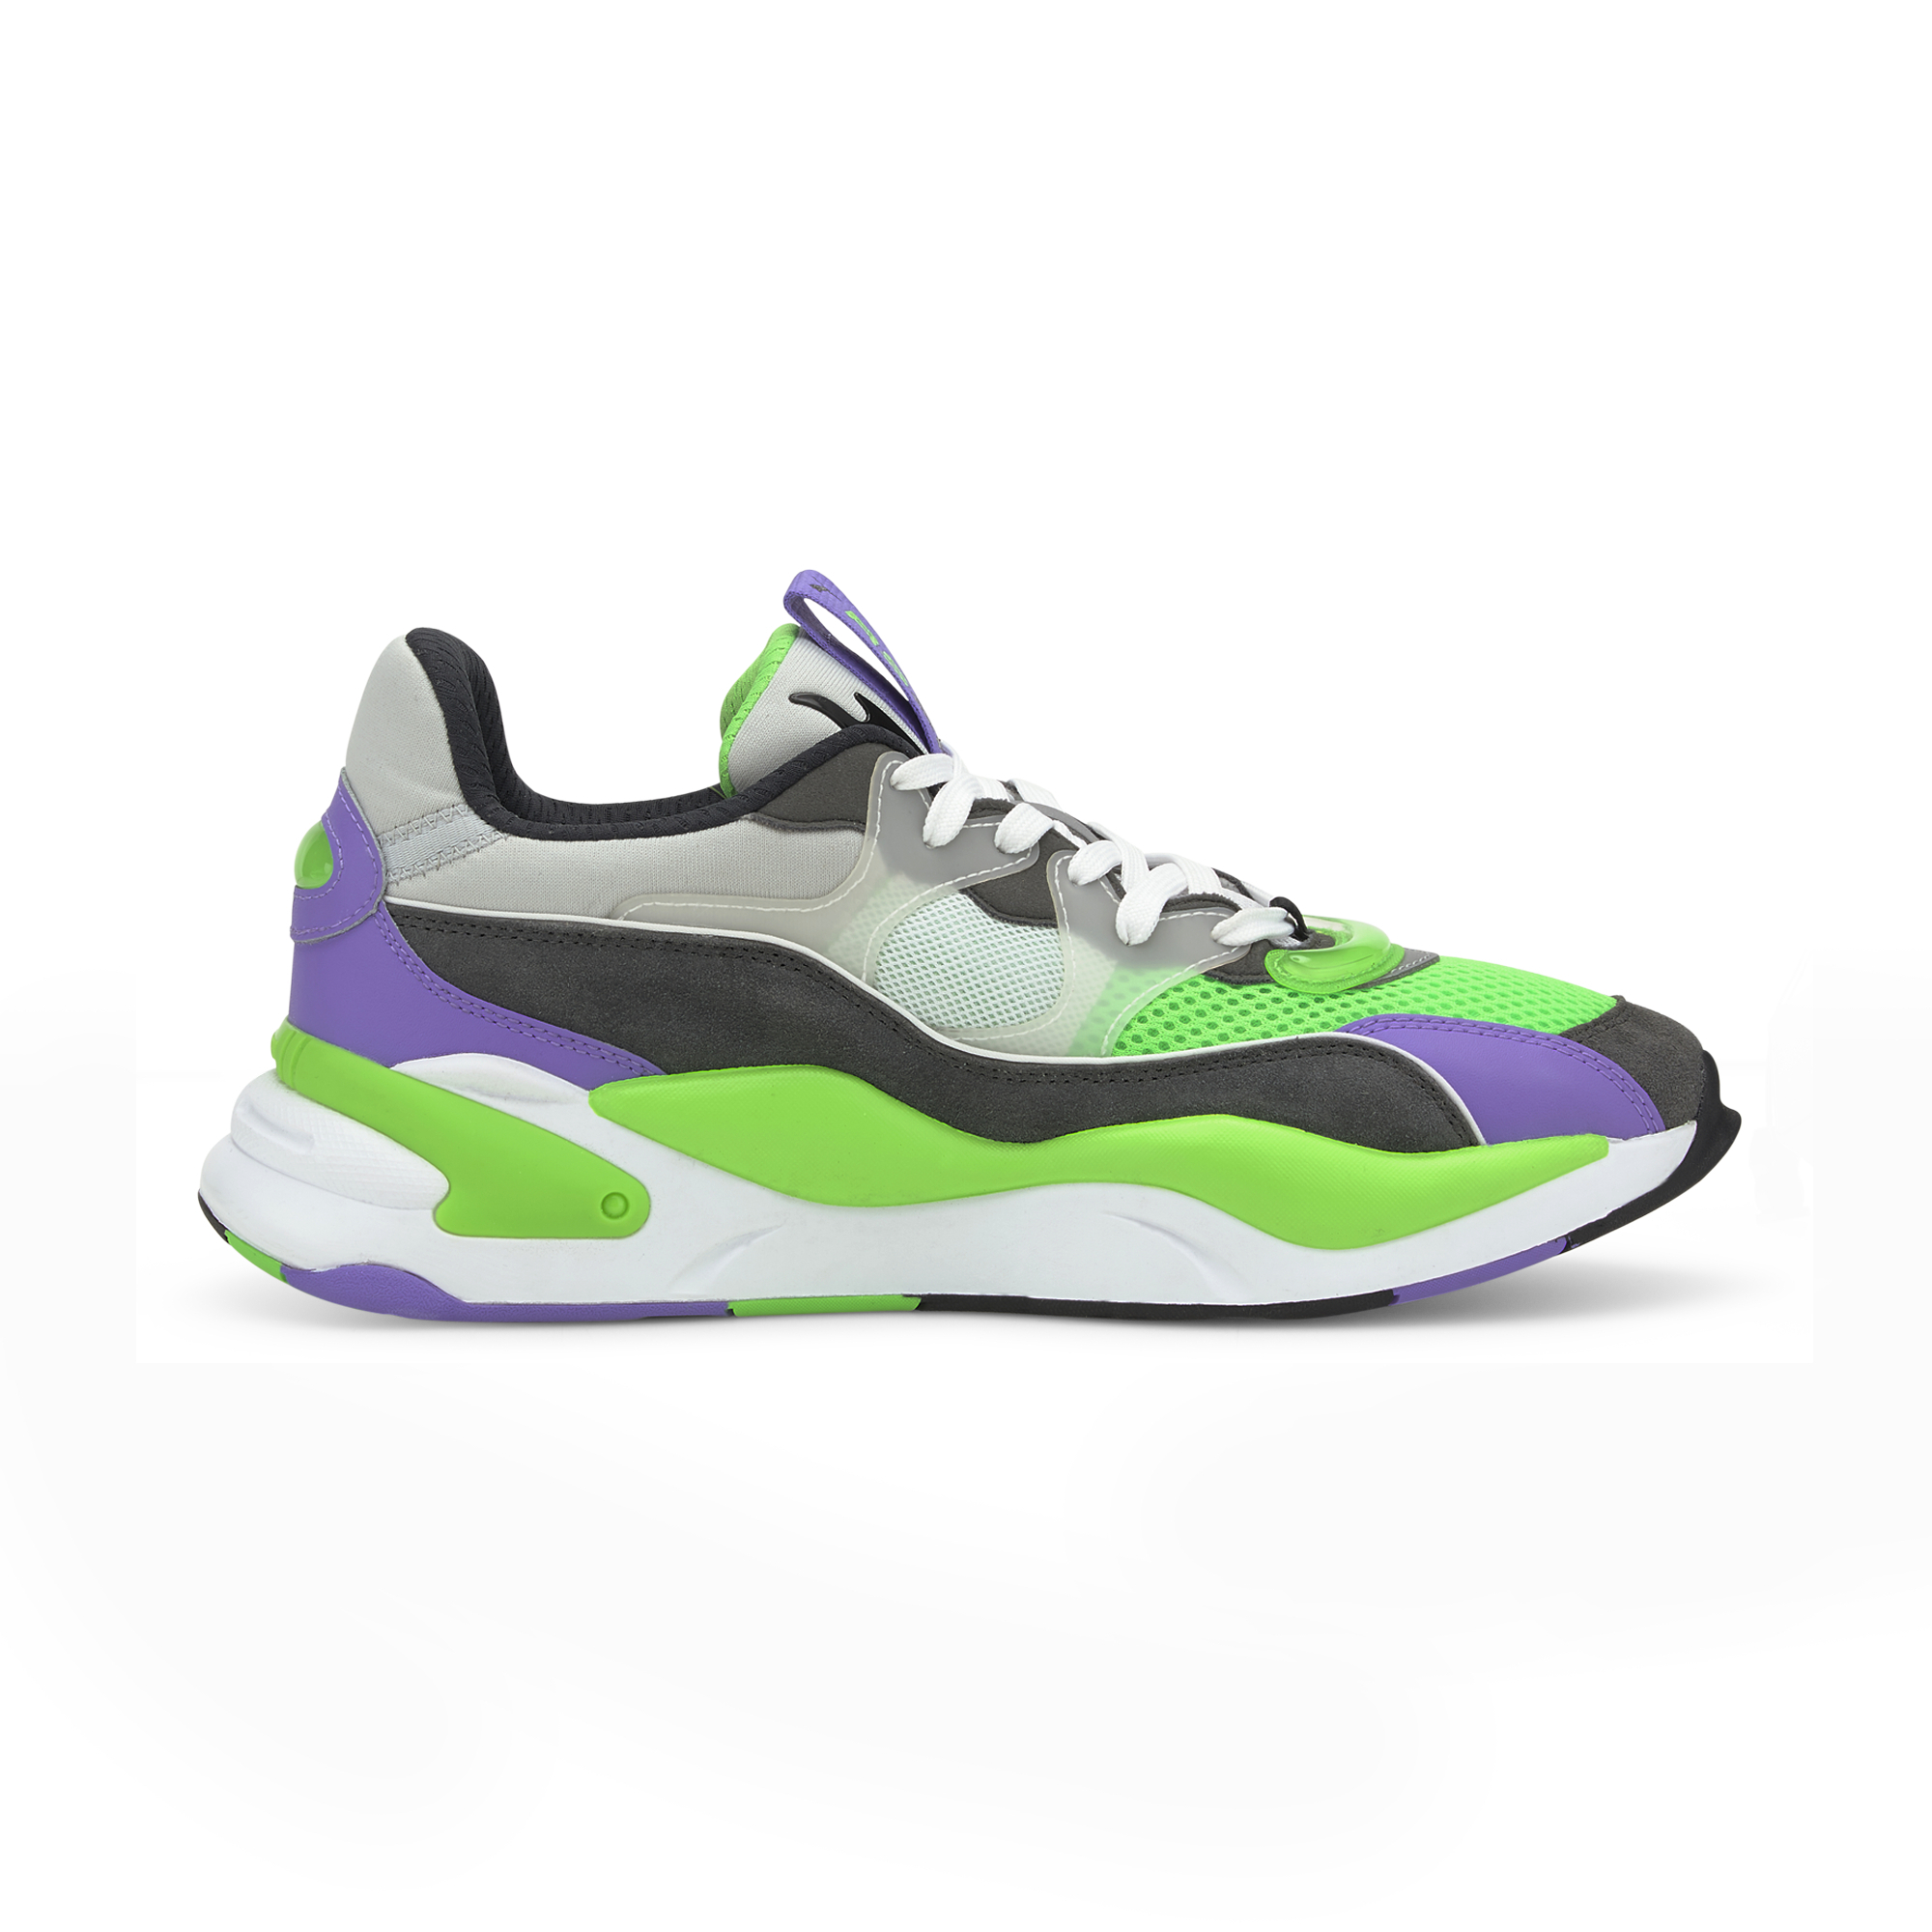 Puma RS-2K Internet Exploring Dark Shadow-Fluo Green, Gray